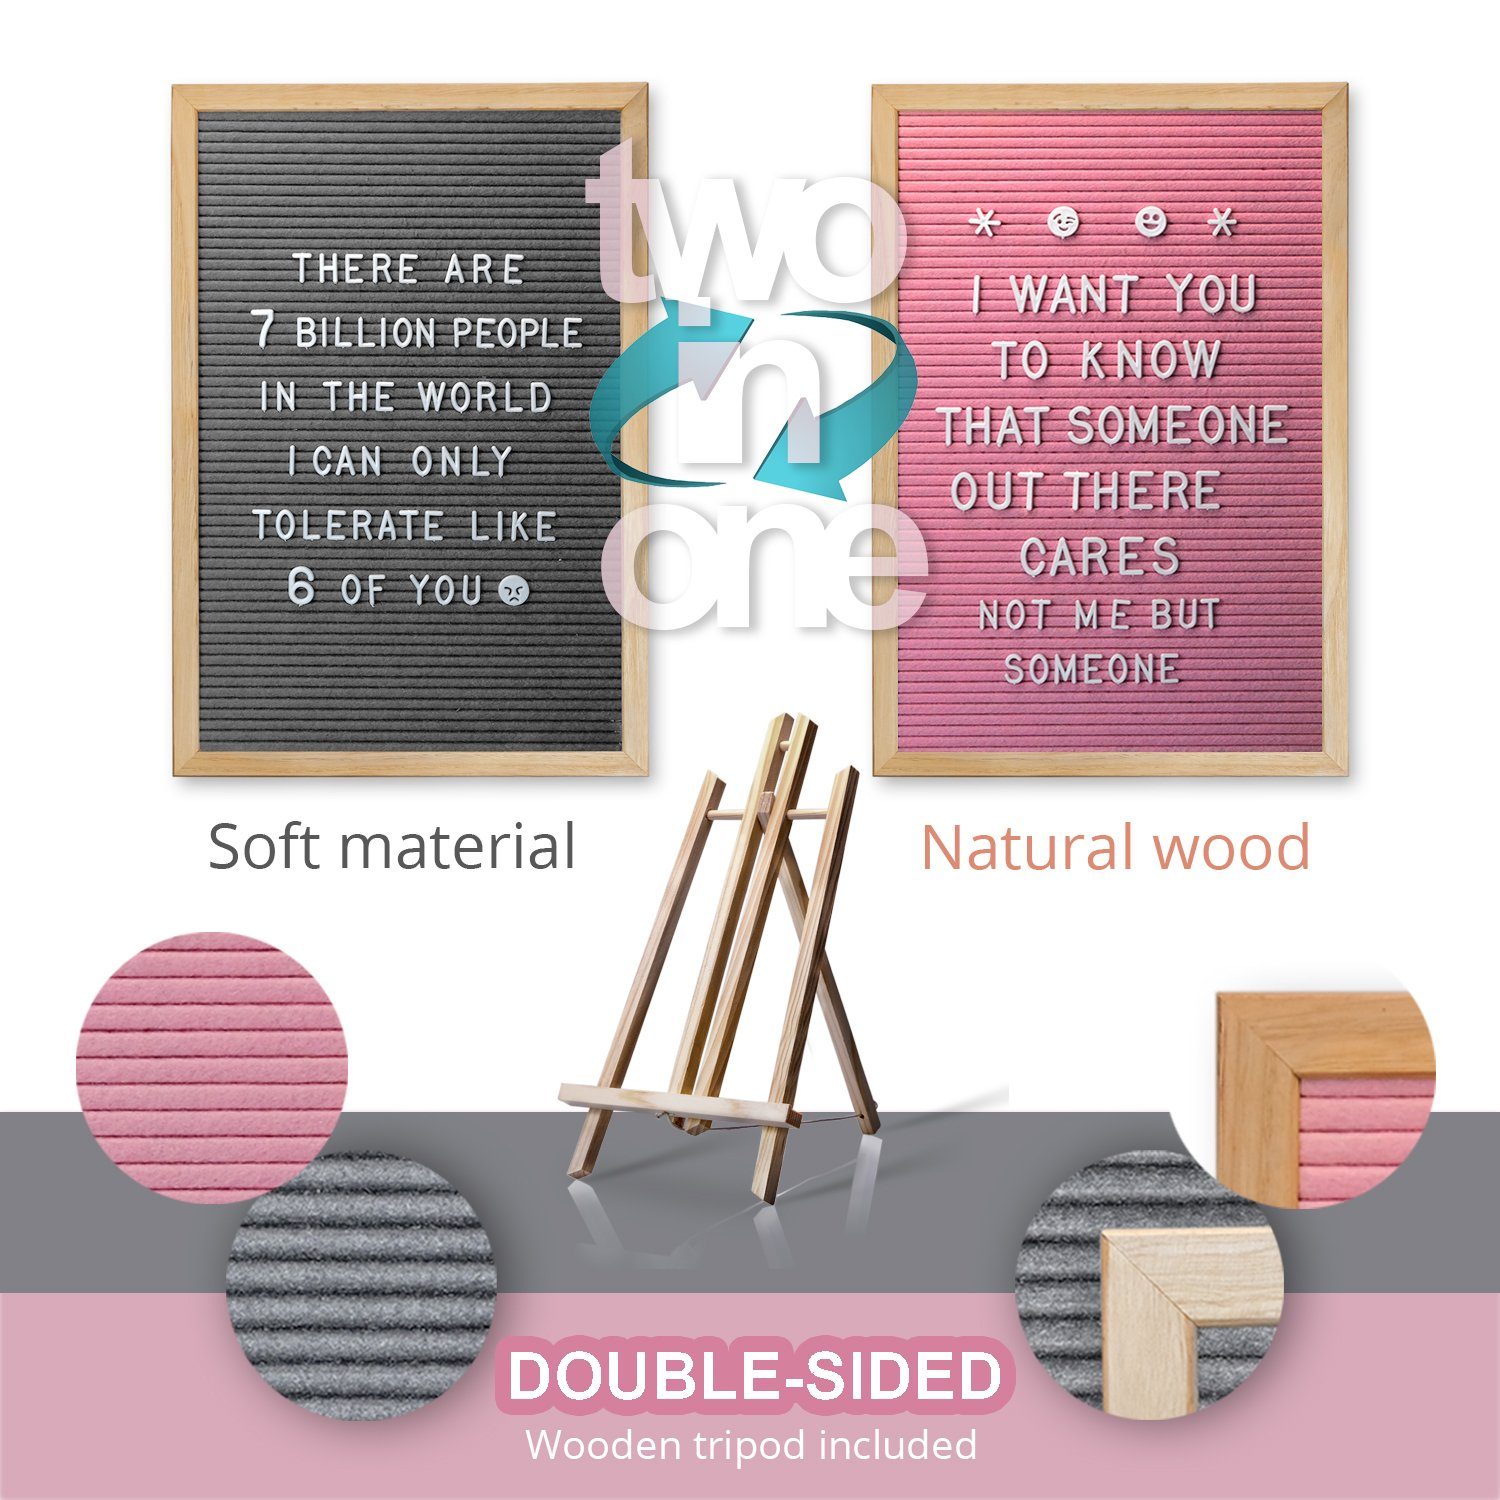 Double Sided Gray and Pink Felt Letter Board with Easel Stand 12 x 18 | 718 Changeable Characters Including 1 inch and ¾ Letters, Symbols, Emojis Hashtag + More | Hook to Hang | 2 Bags Heart Felt Love